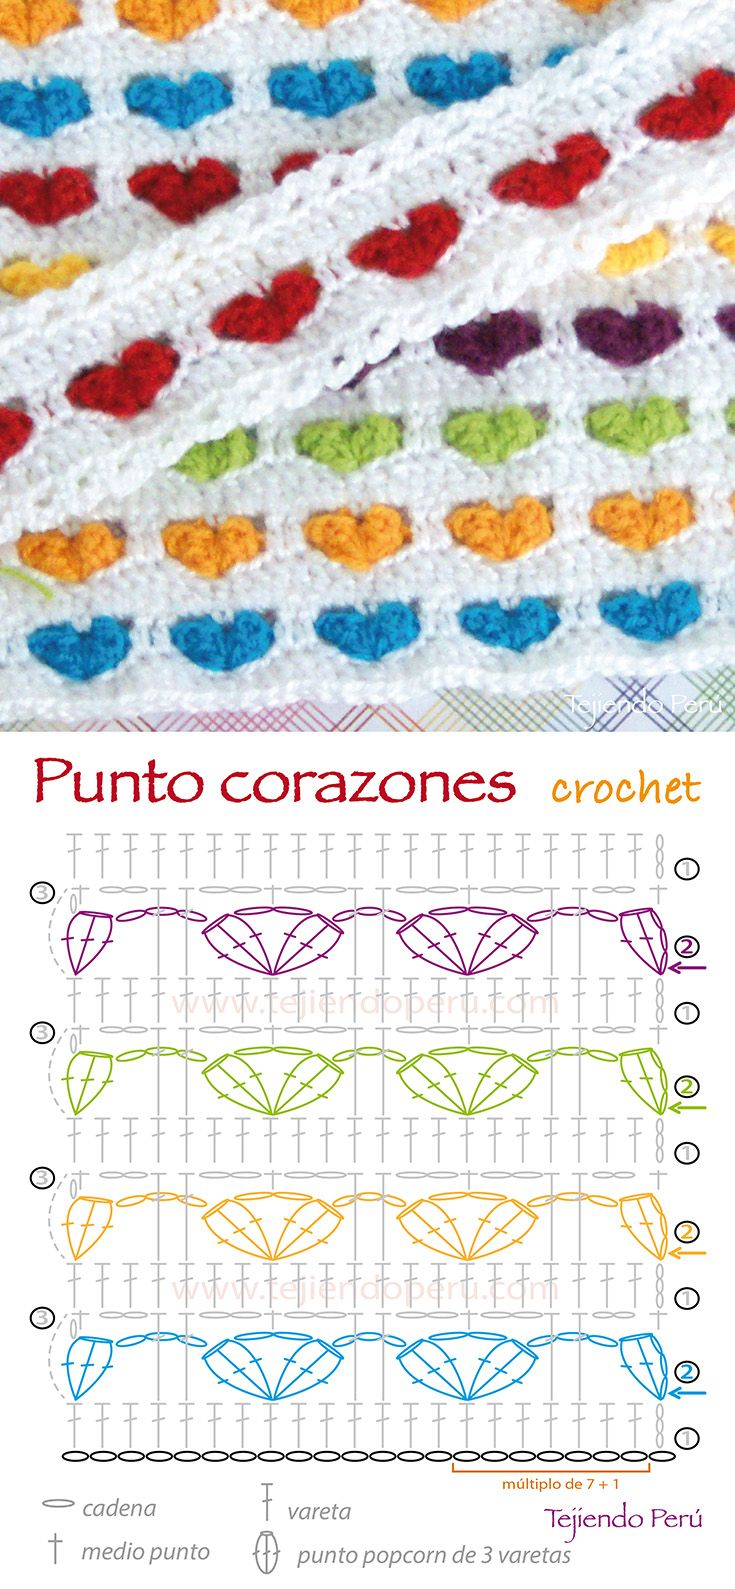 Heart Stitch - Free Crochet Diagram - See https://www.youtube.com/watch?v=sQizVaUyAGQ For Accompanying Spanish Video Tutorial  - (youtube)